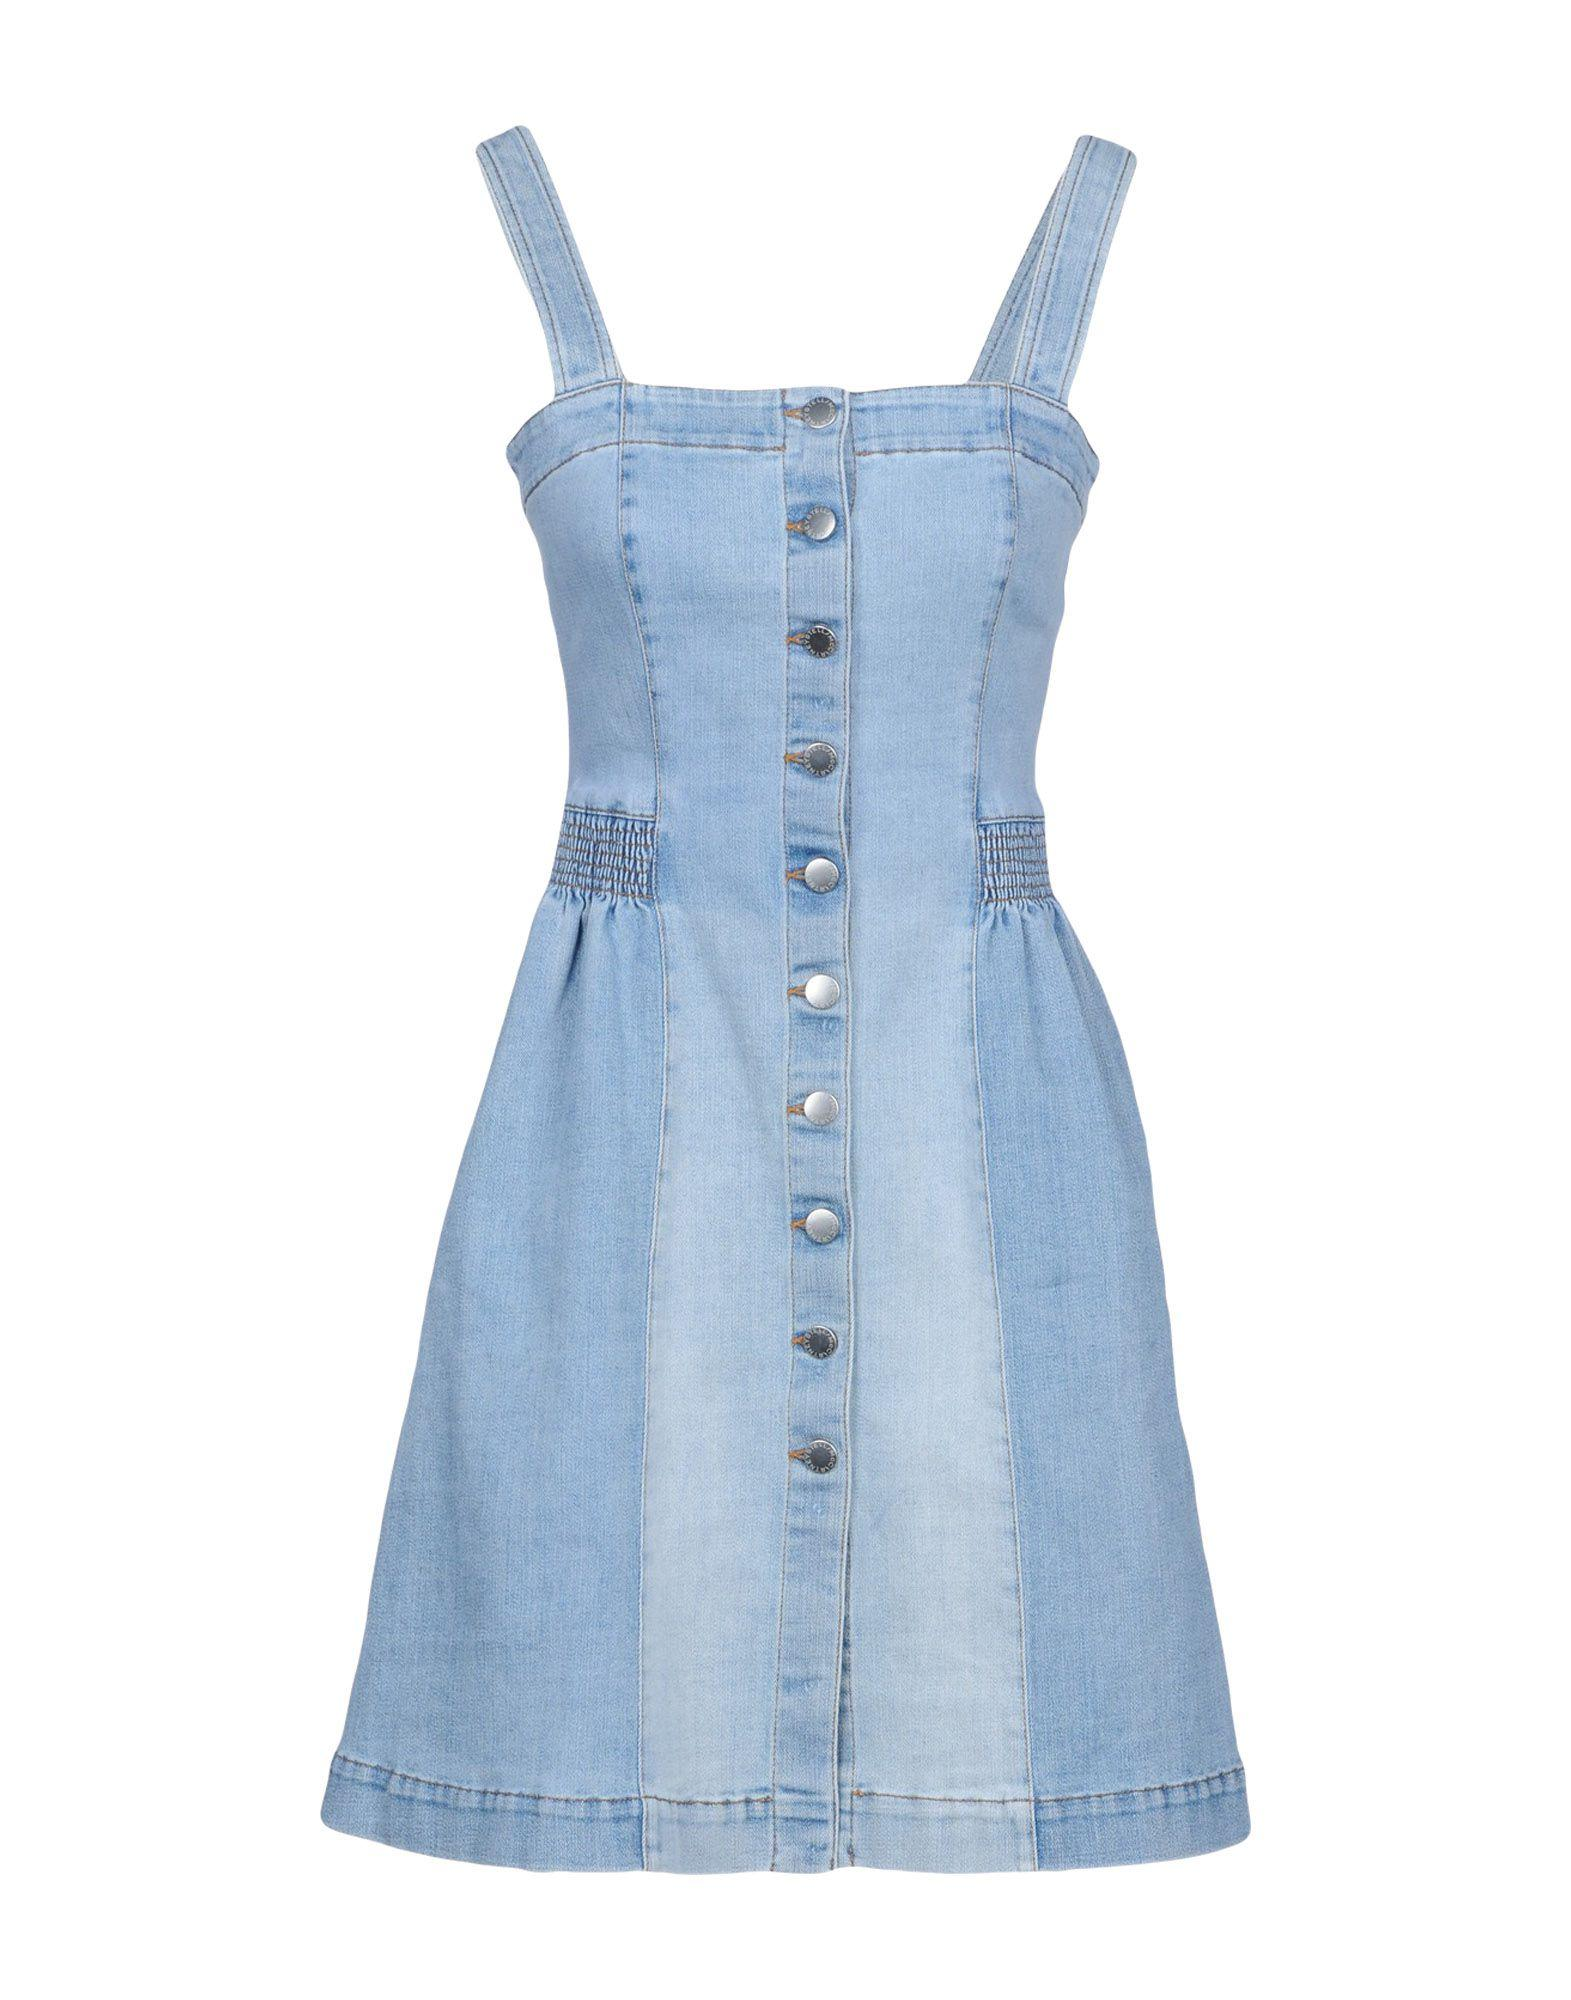 Stella Mccartney Denim Dress In Blue